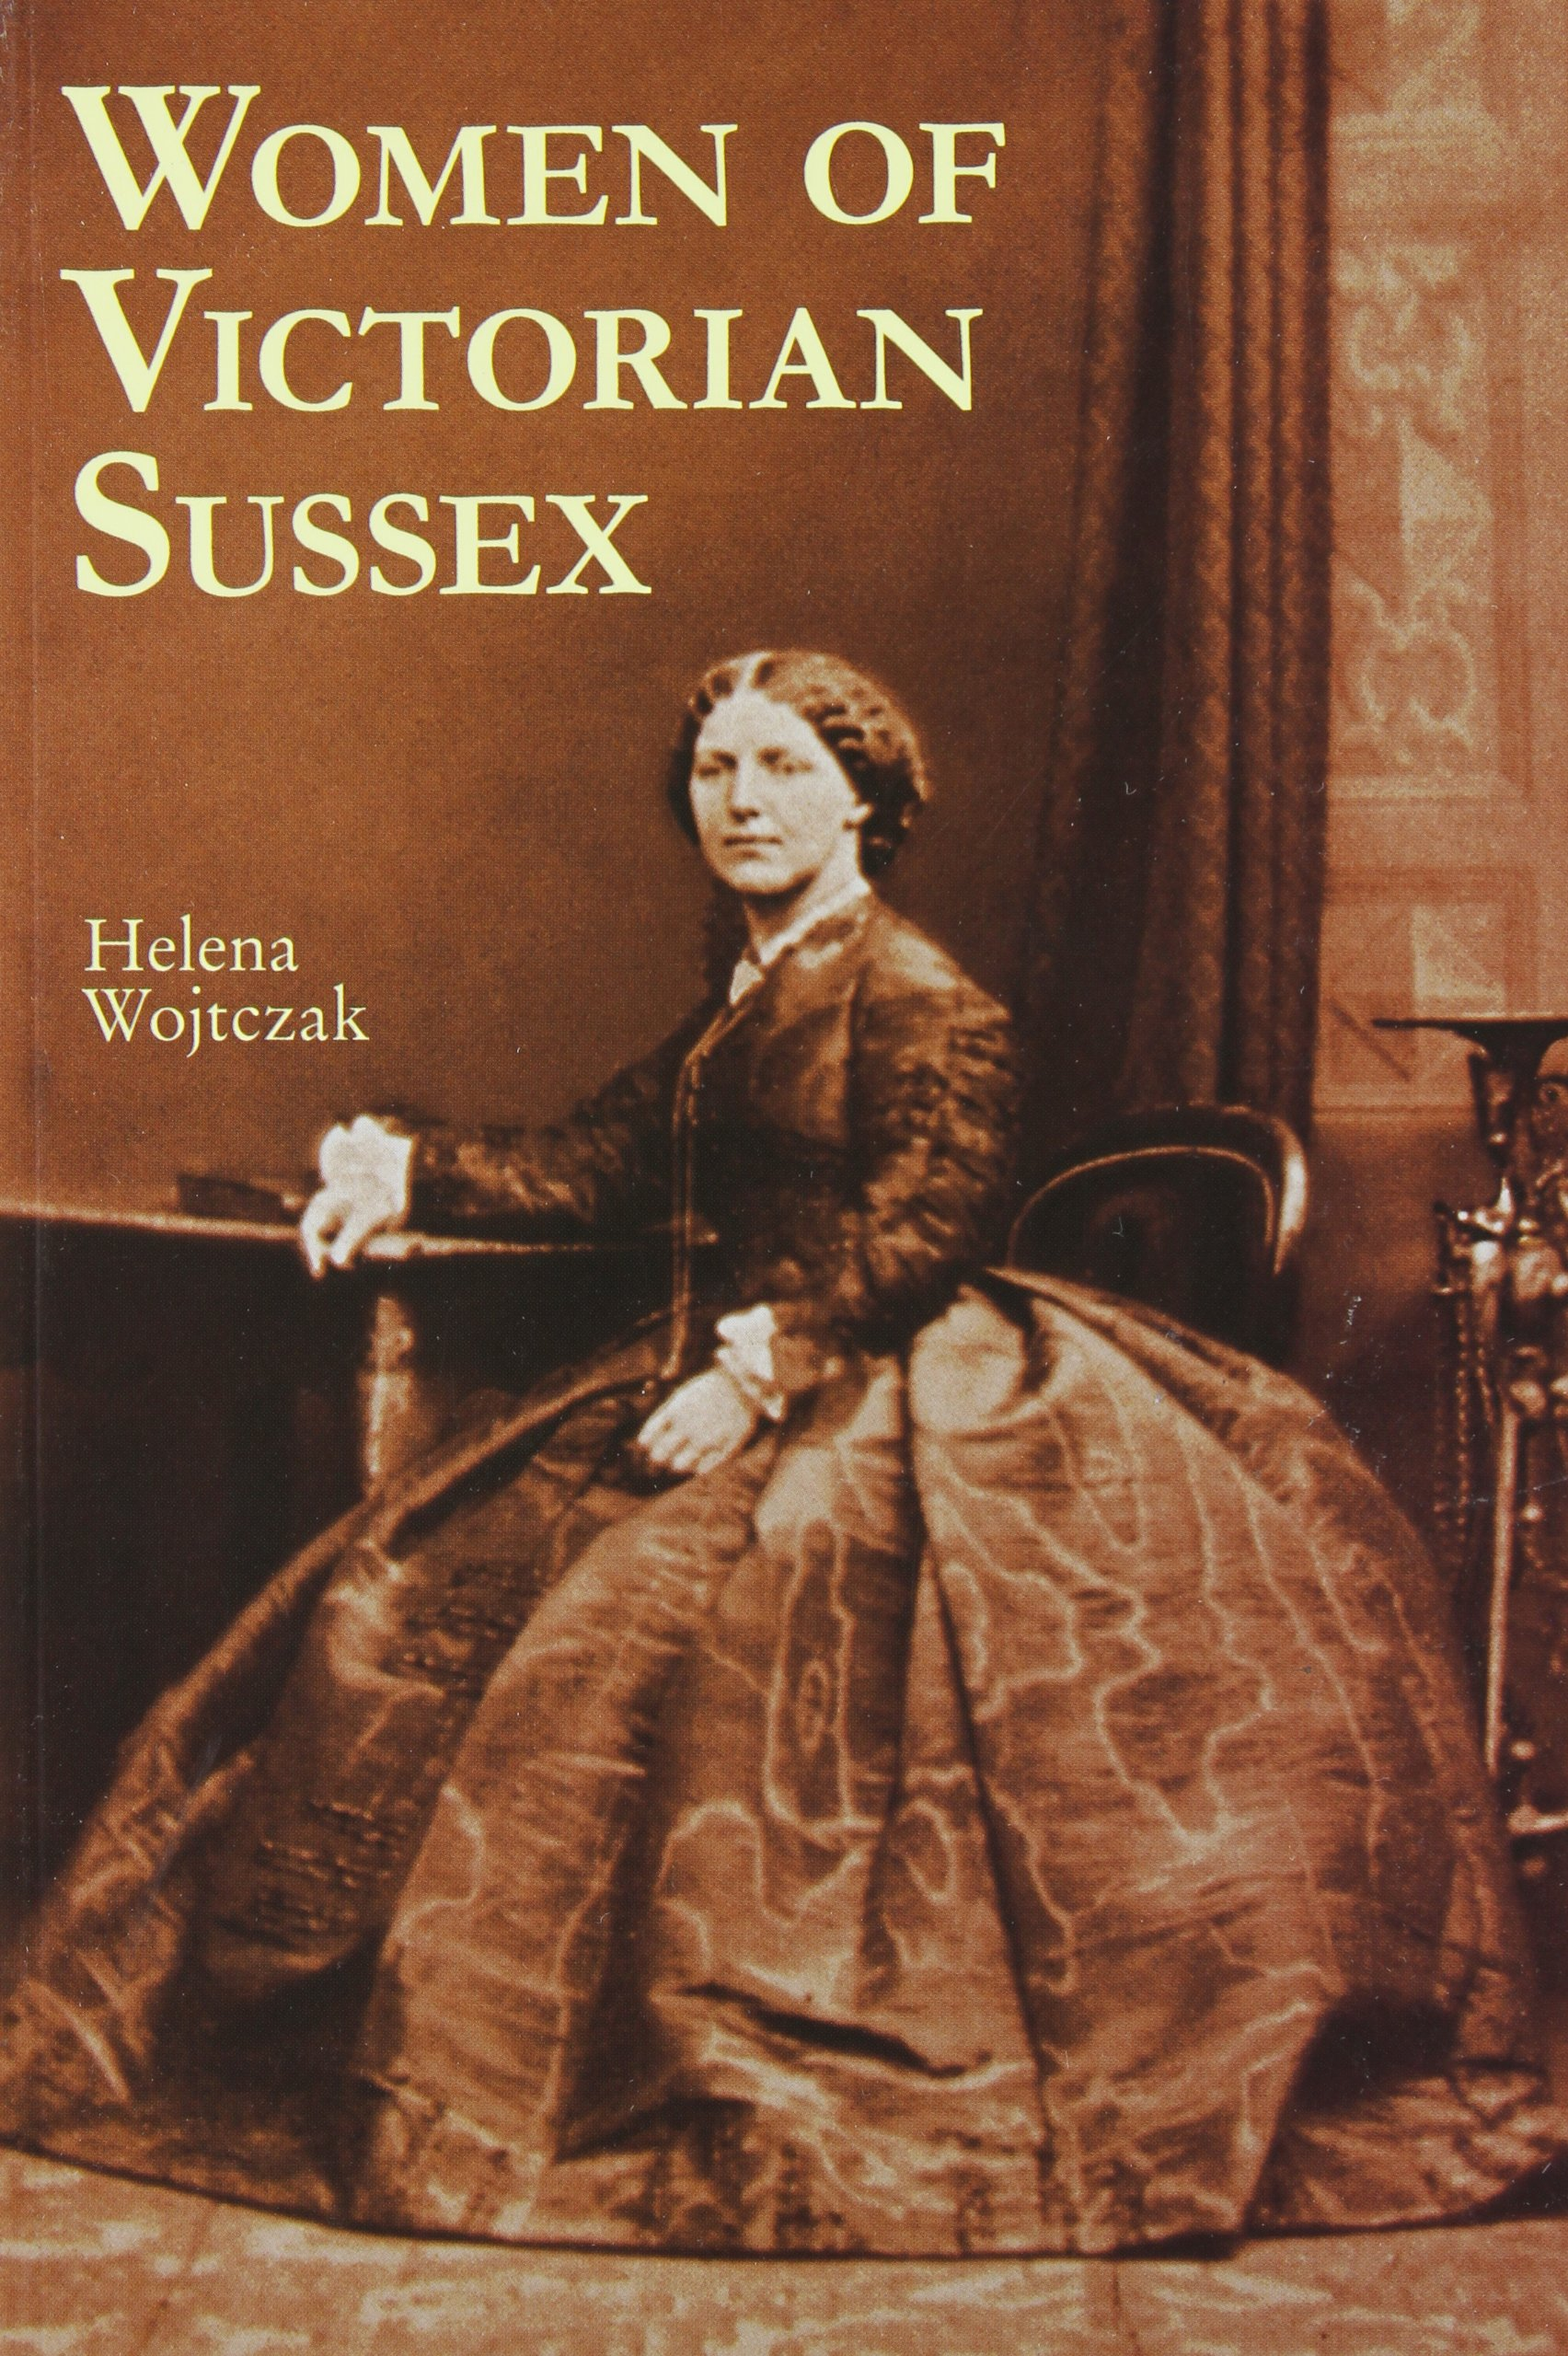 Download Women of Victorian Sussex: Their Status, Occupations and Dealings with the Law, 1830-1870 ebook